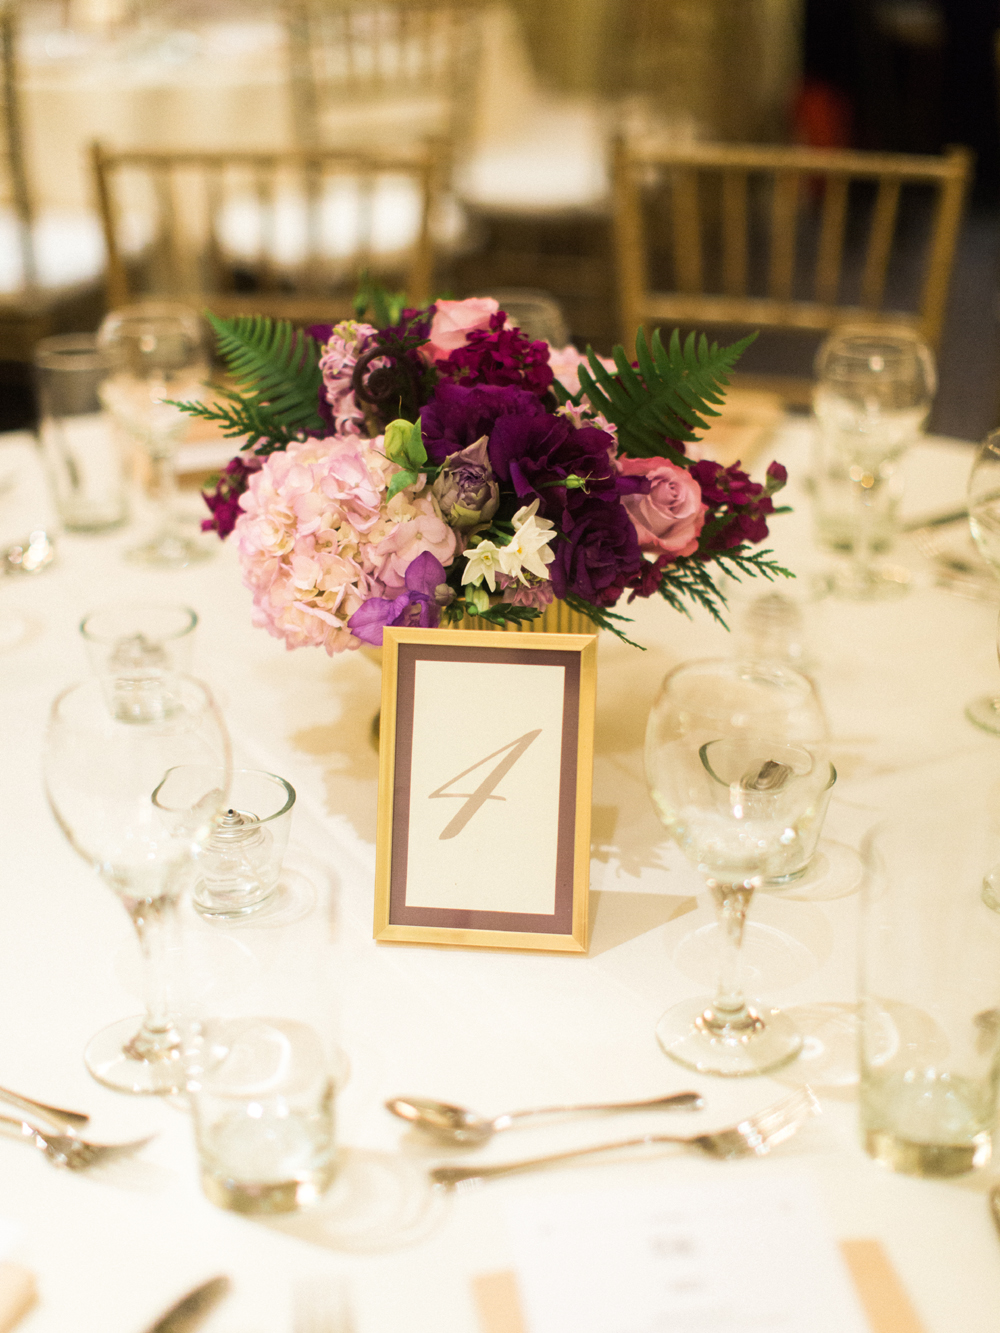 Bridalbliss.com | Portland Wedding| Oregon Event Planning and Design | Corinne Krogh Photography | Blum Floral